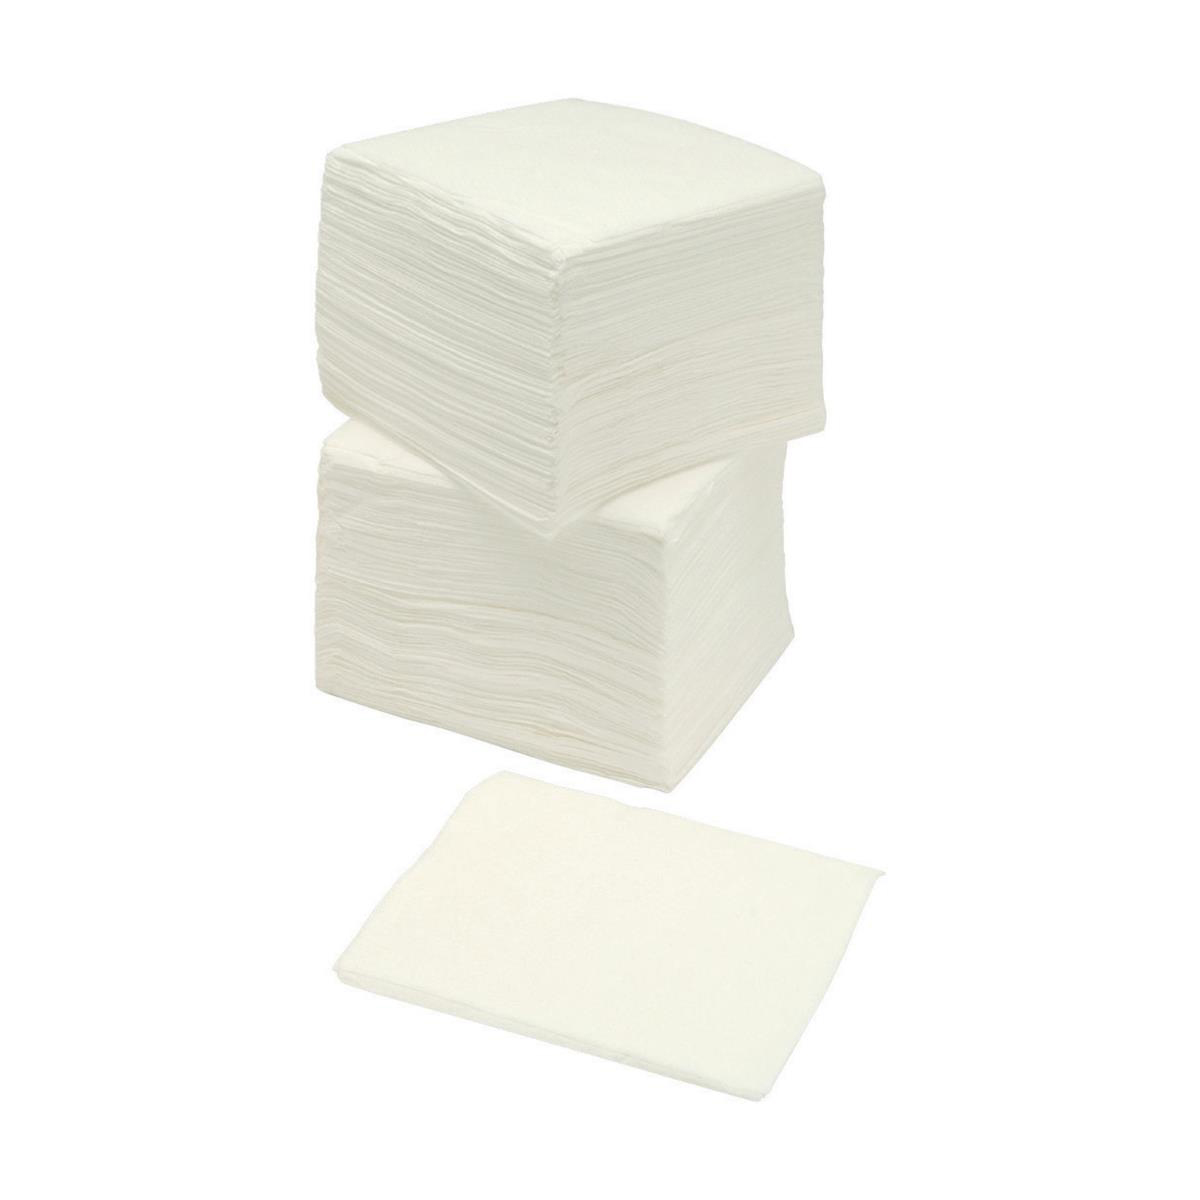 Serviettes / Napkins 5 Star Facilities Napkin 2-ply 400x400mm White Pack 100